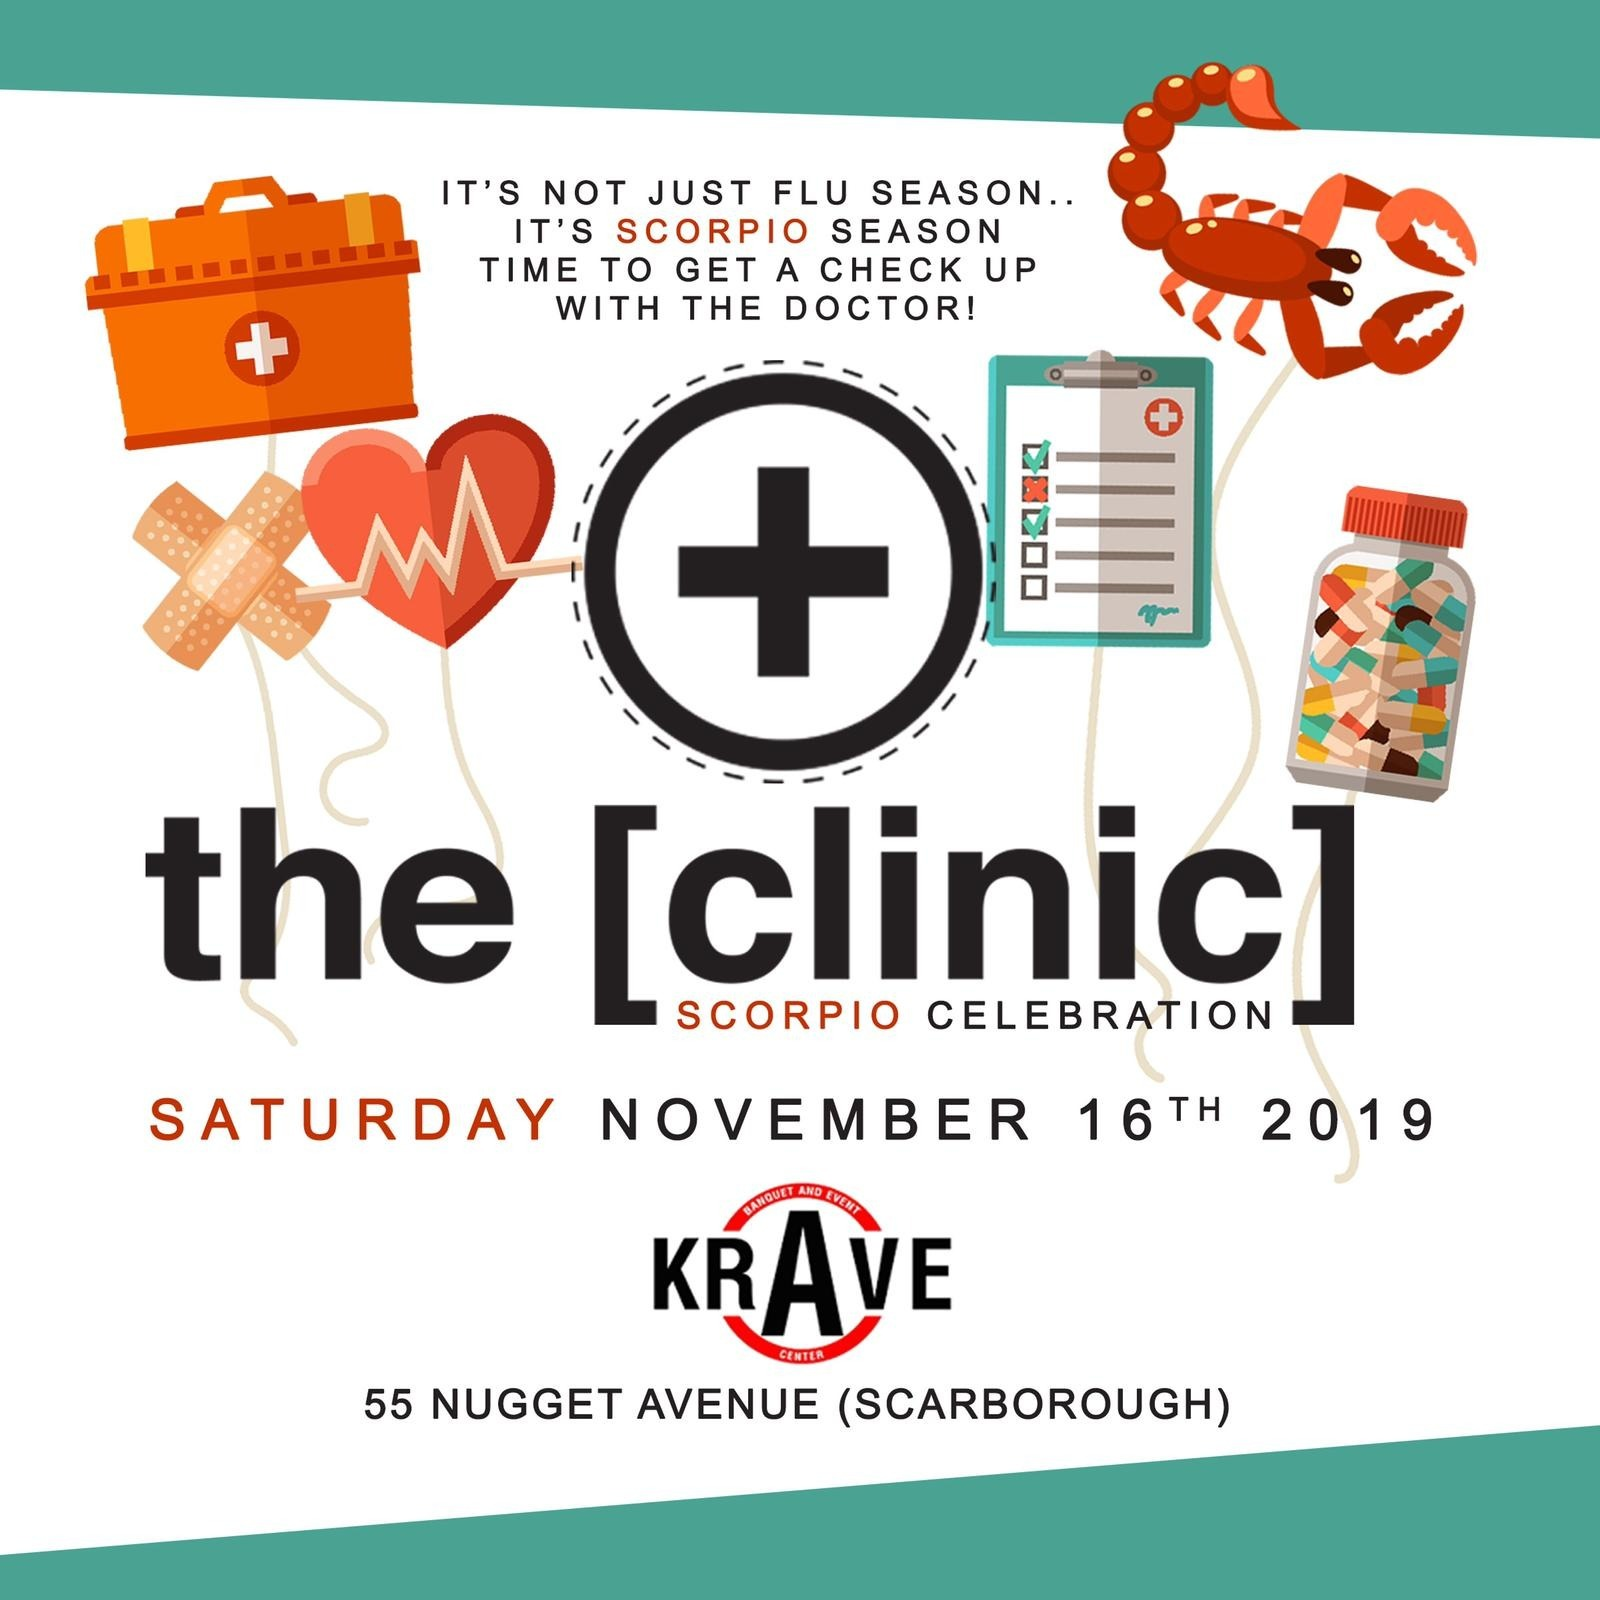 THE CLINIC - Scorpio Celebration